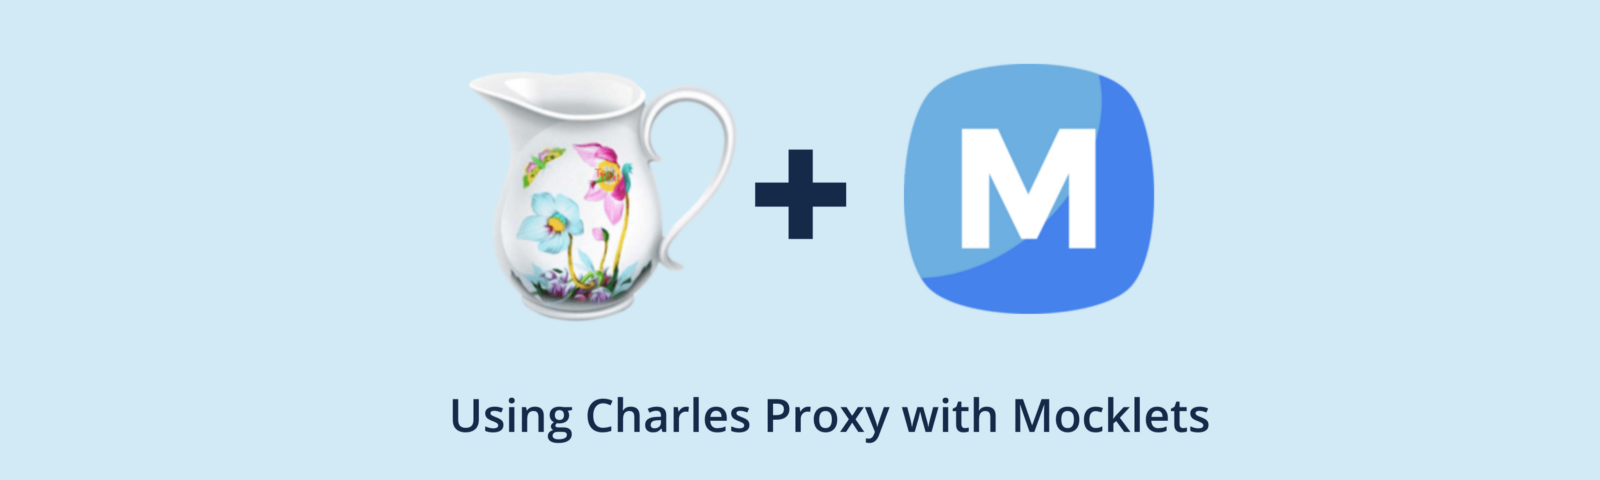 Using Charles Proxy with Mocklets